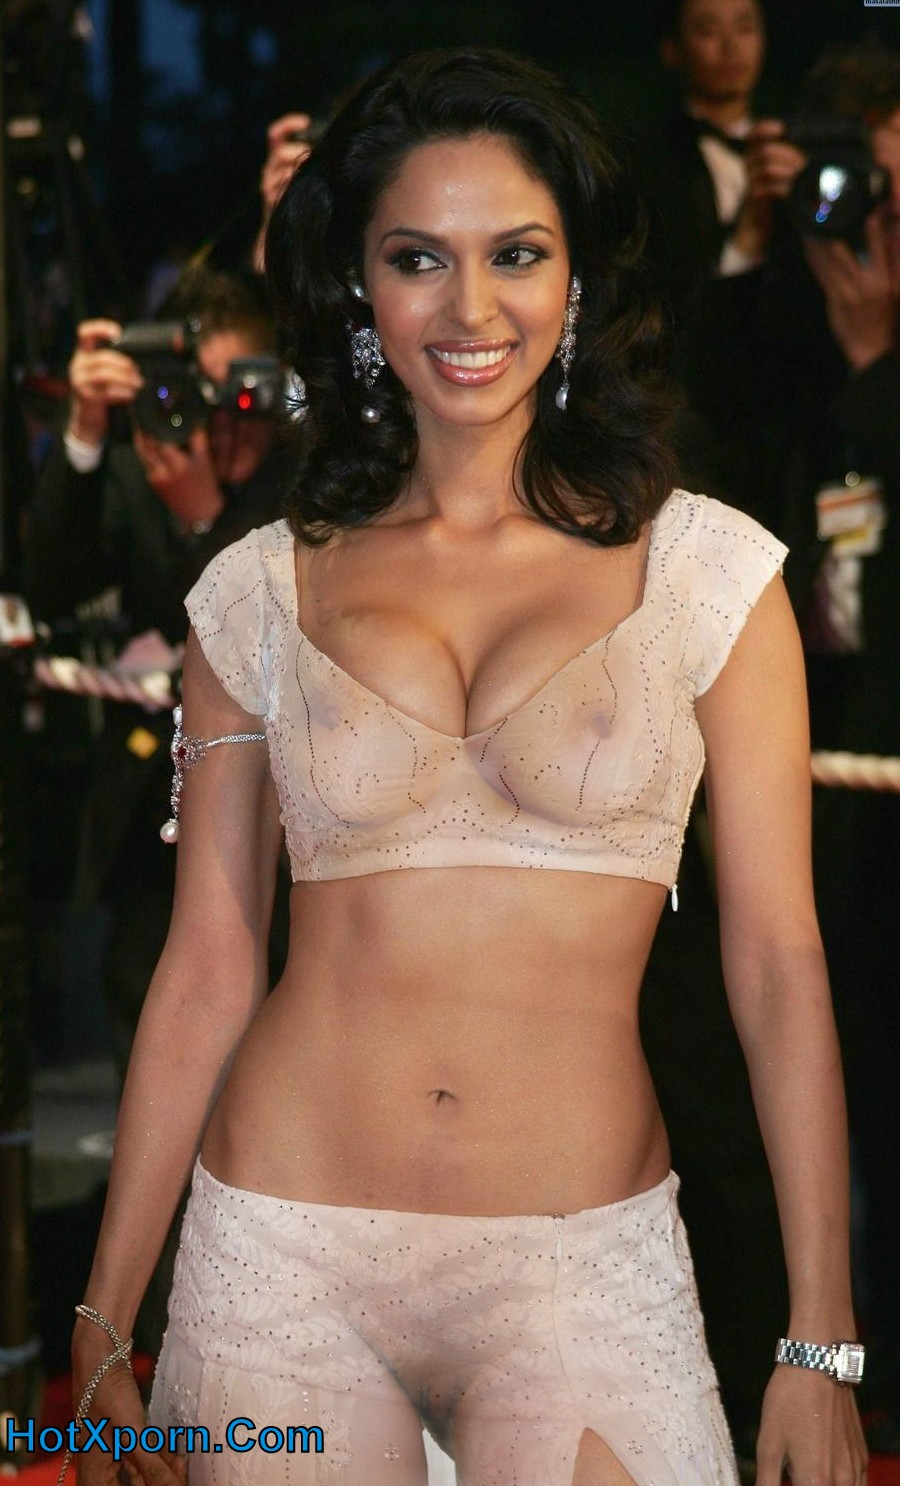 hot mallika sherawat nacked fake photos